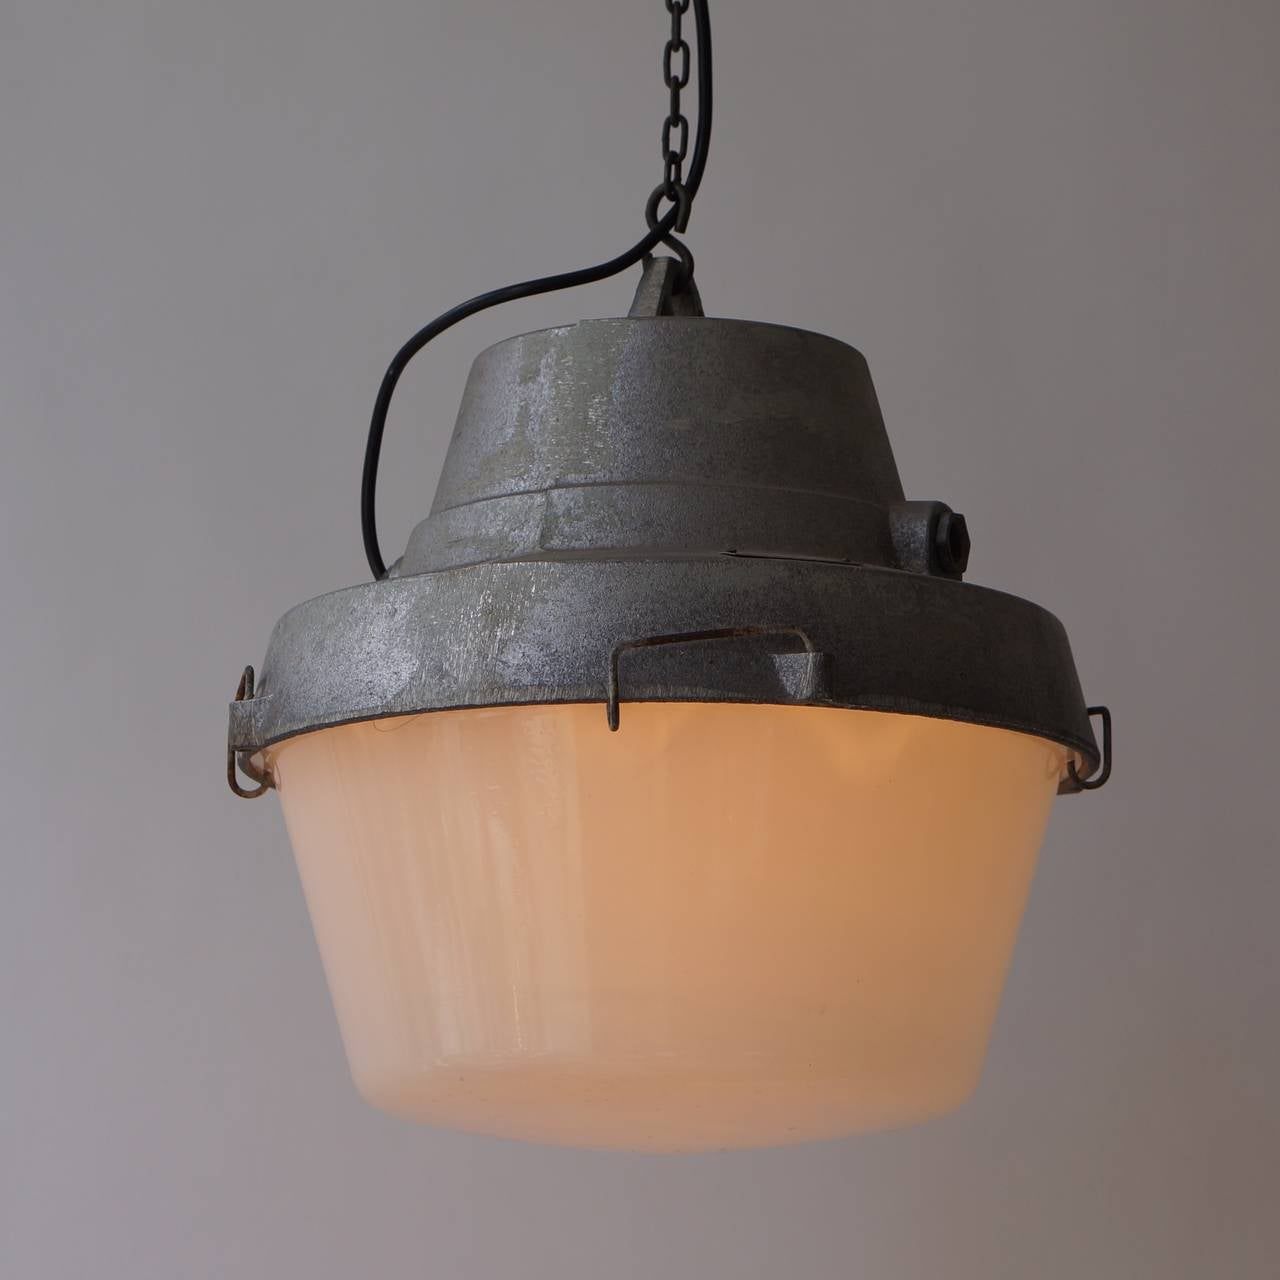 Set of Five Industrial Pendant Lights In Good Condition For Sale In Antwerp, BE